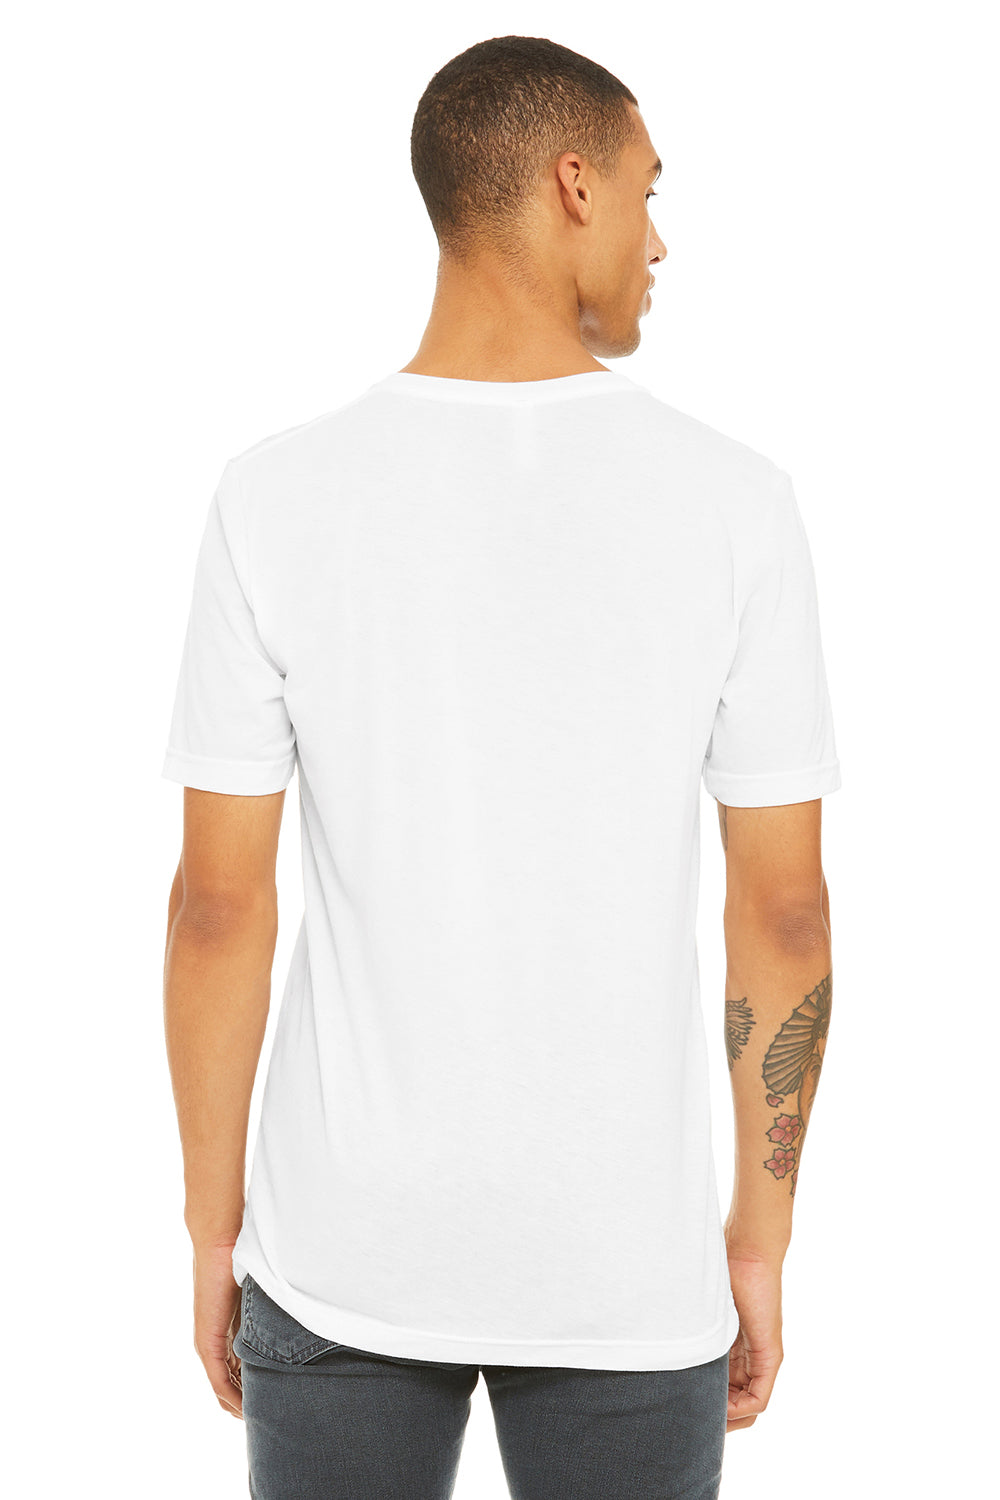 Bella + Canvas 3415C Mens Short Sleeve V-Neck T-Shirt White Back